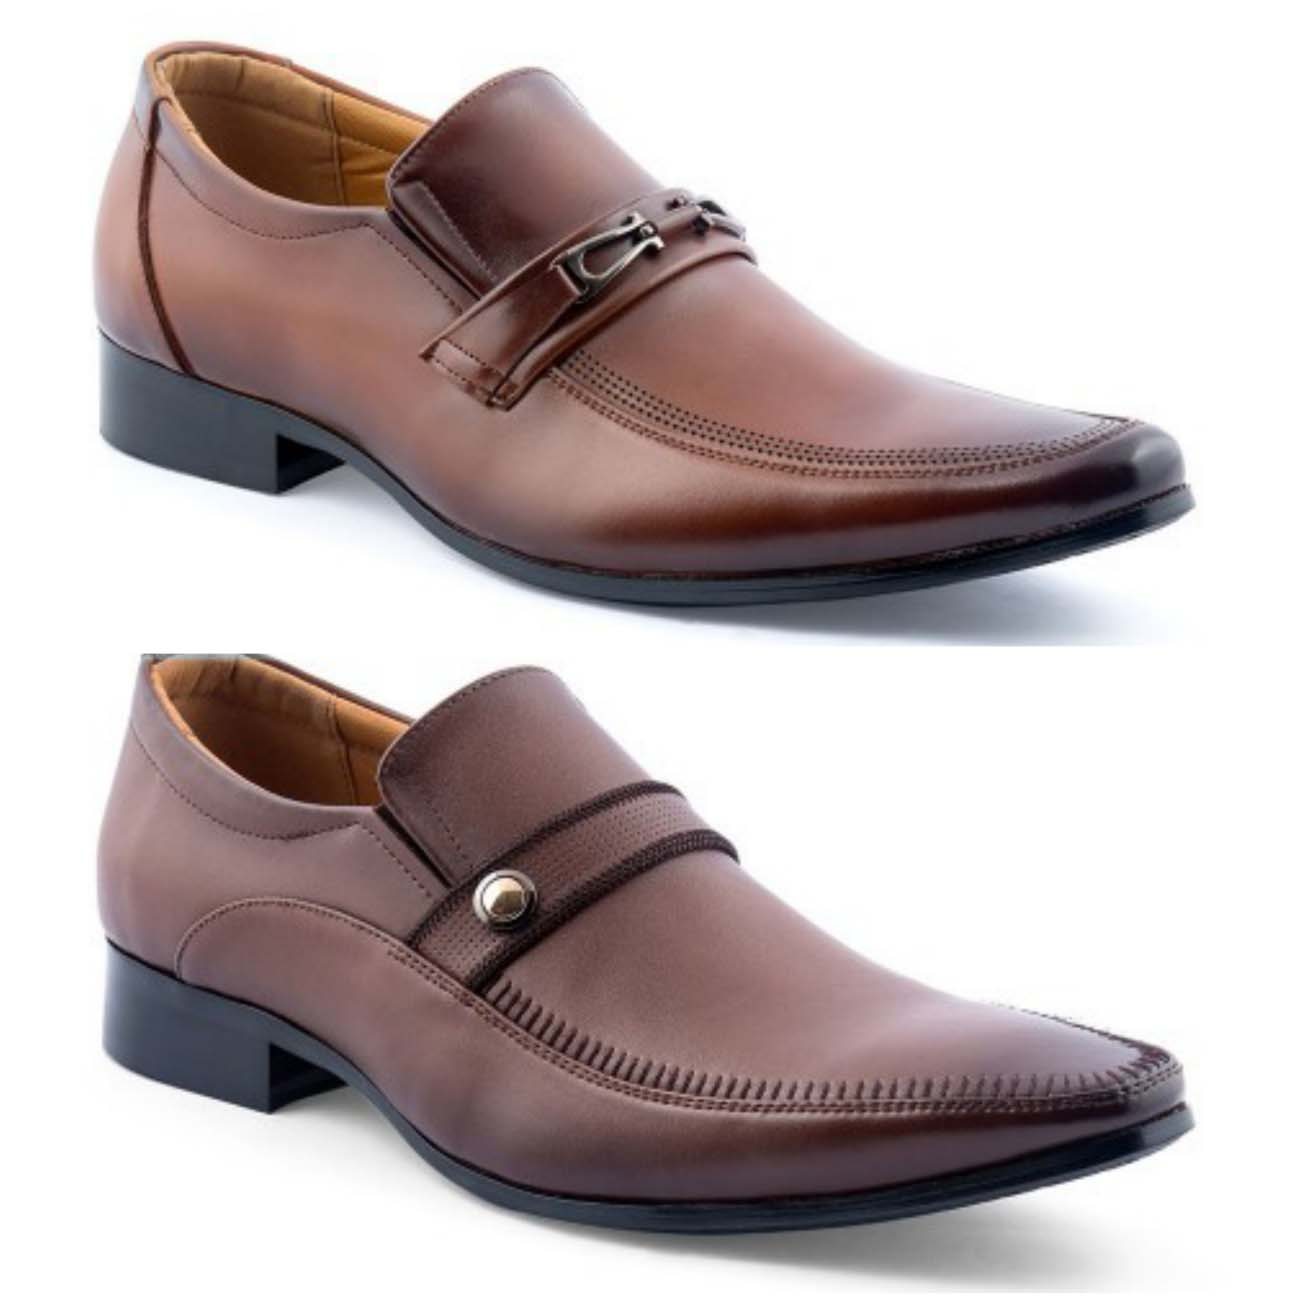 Servis Shoes Pakistan New Designs With Price